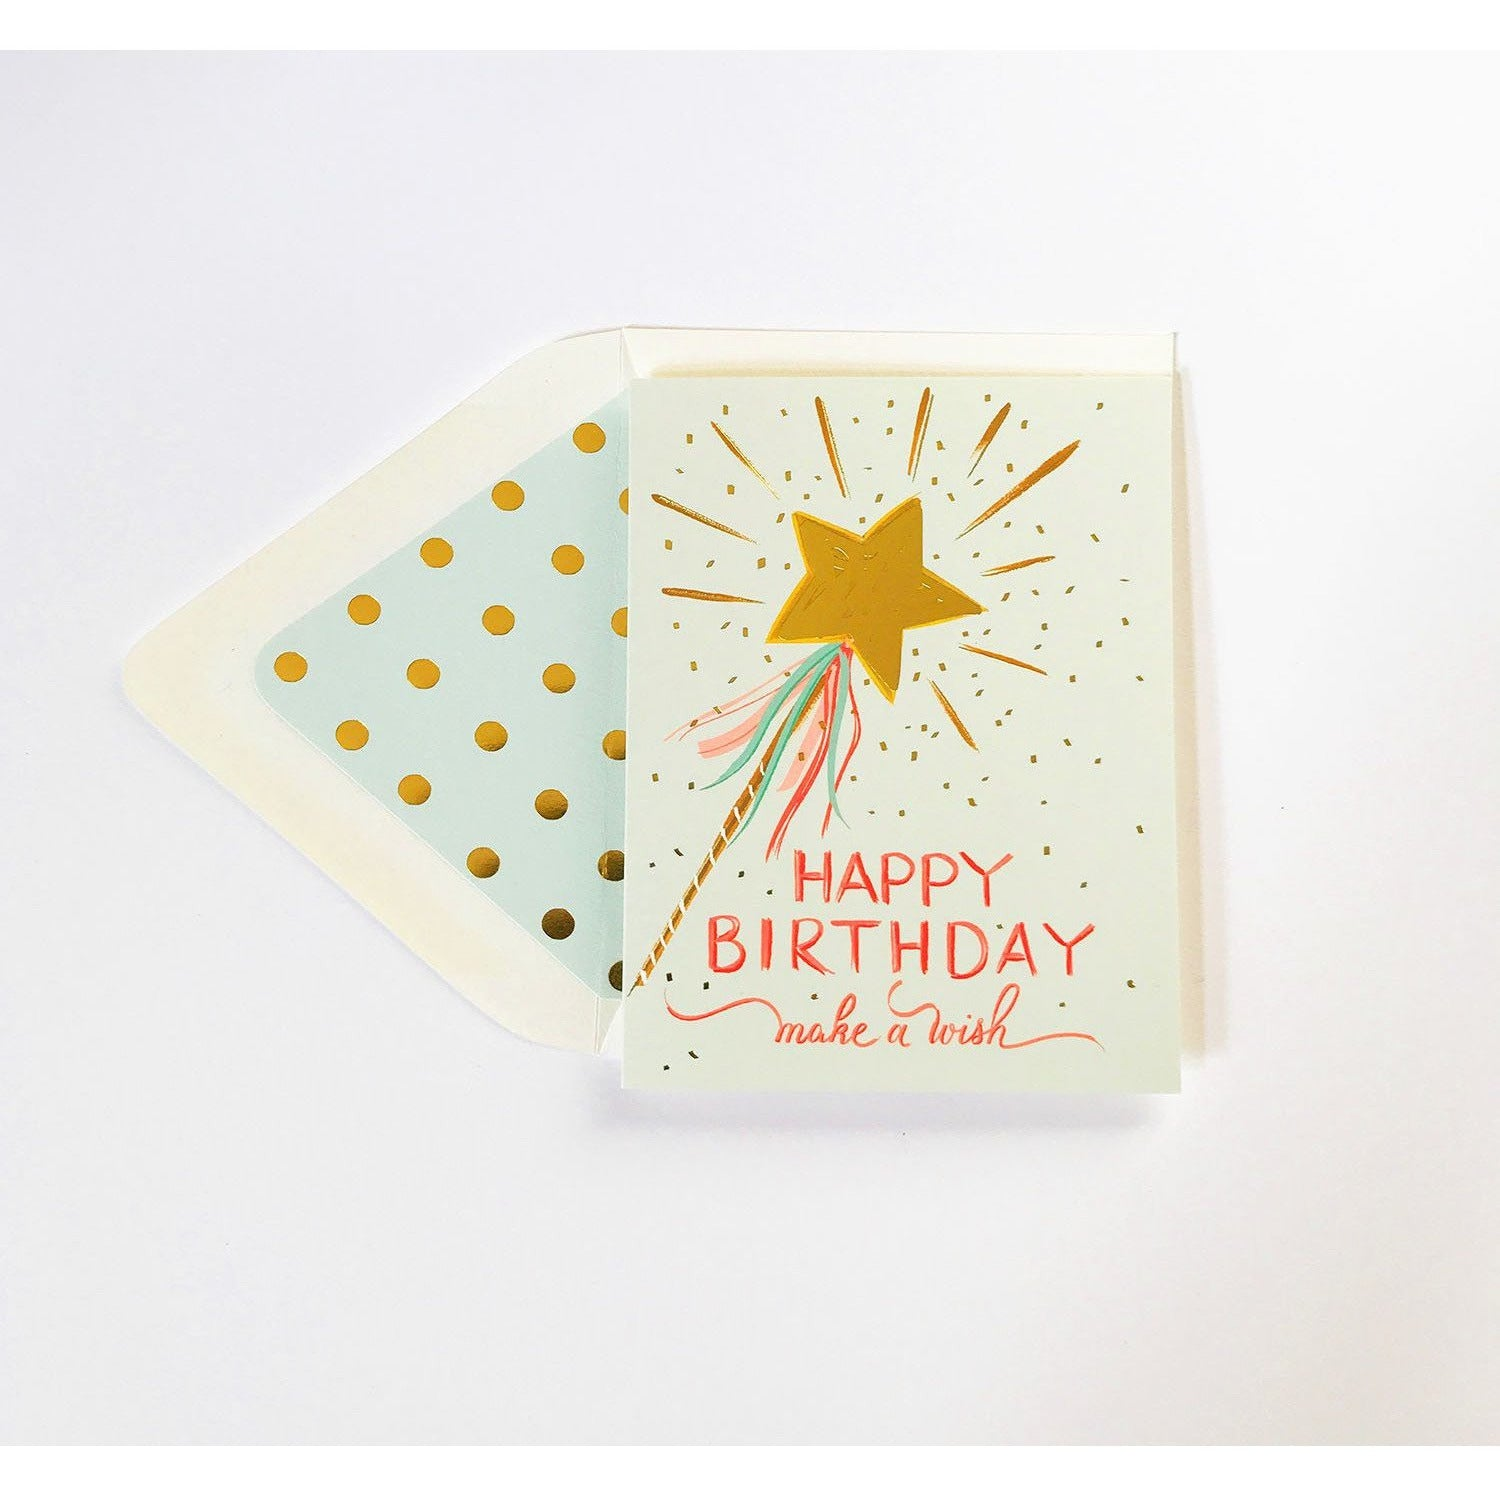 Make a Wish Birthday Card - The First Snow